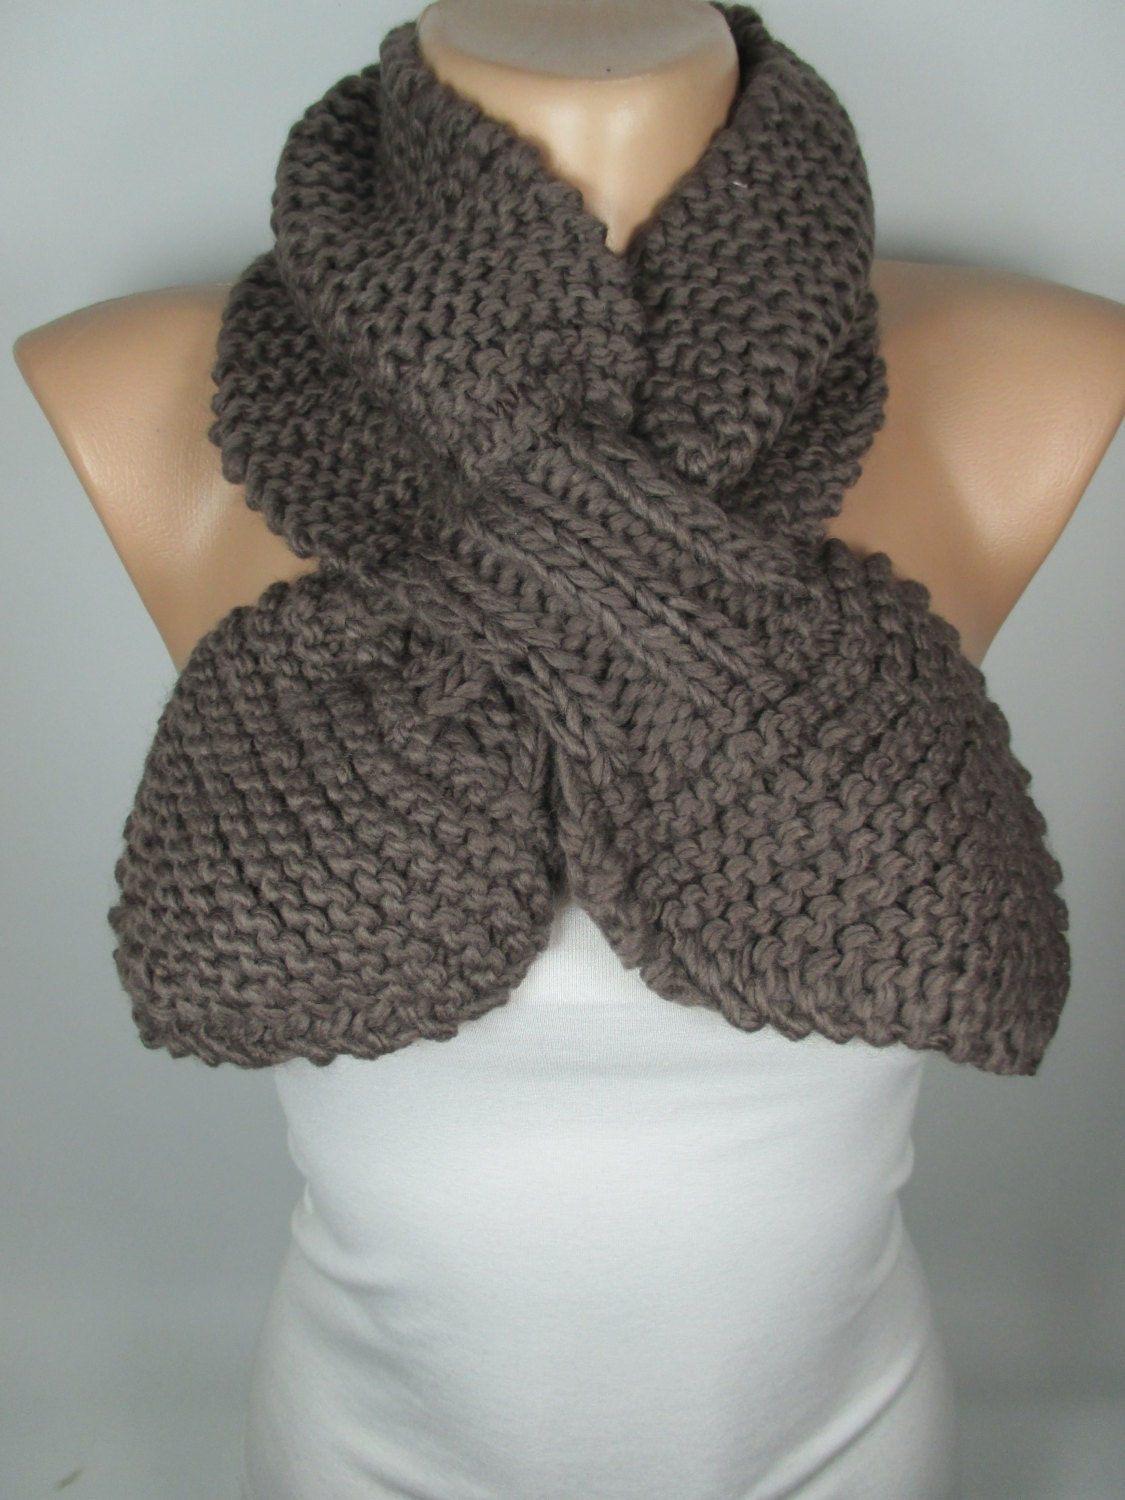 Knitting Pattern Ascot Scarf : Knitted Bow Scarf Brown Scarf Ascot Neck Warmer Cozy Scarf